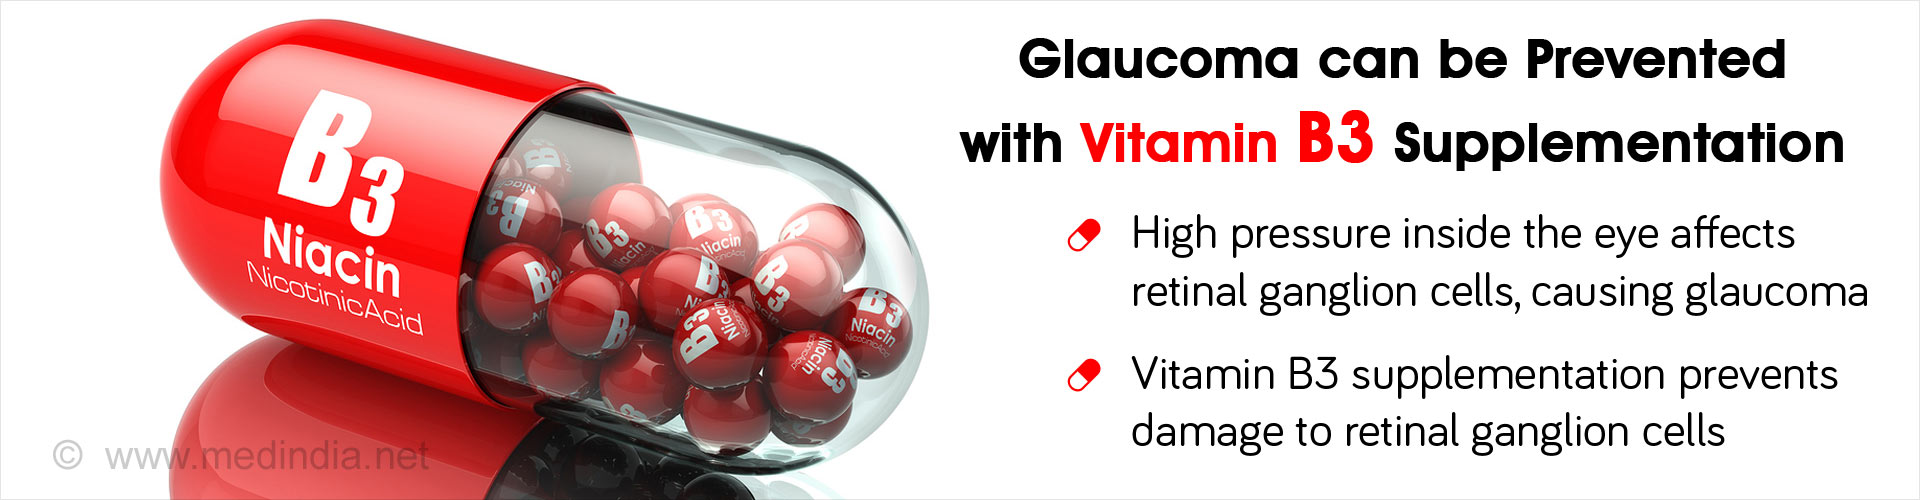 Supplementation of Vitamin B3 Prevents Glaucoma